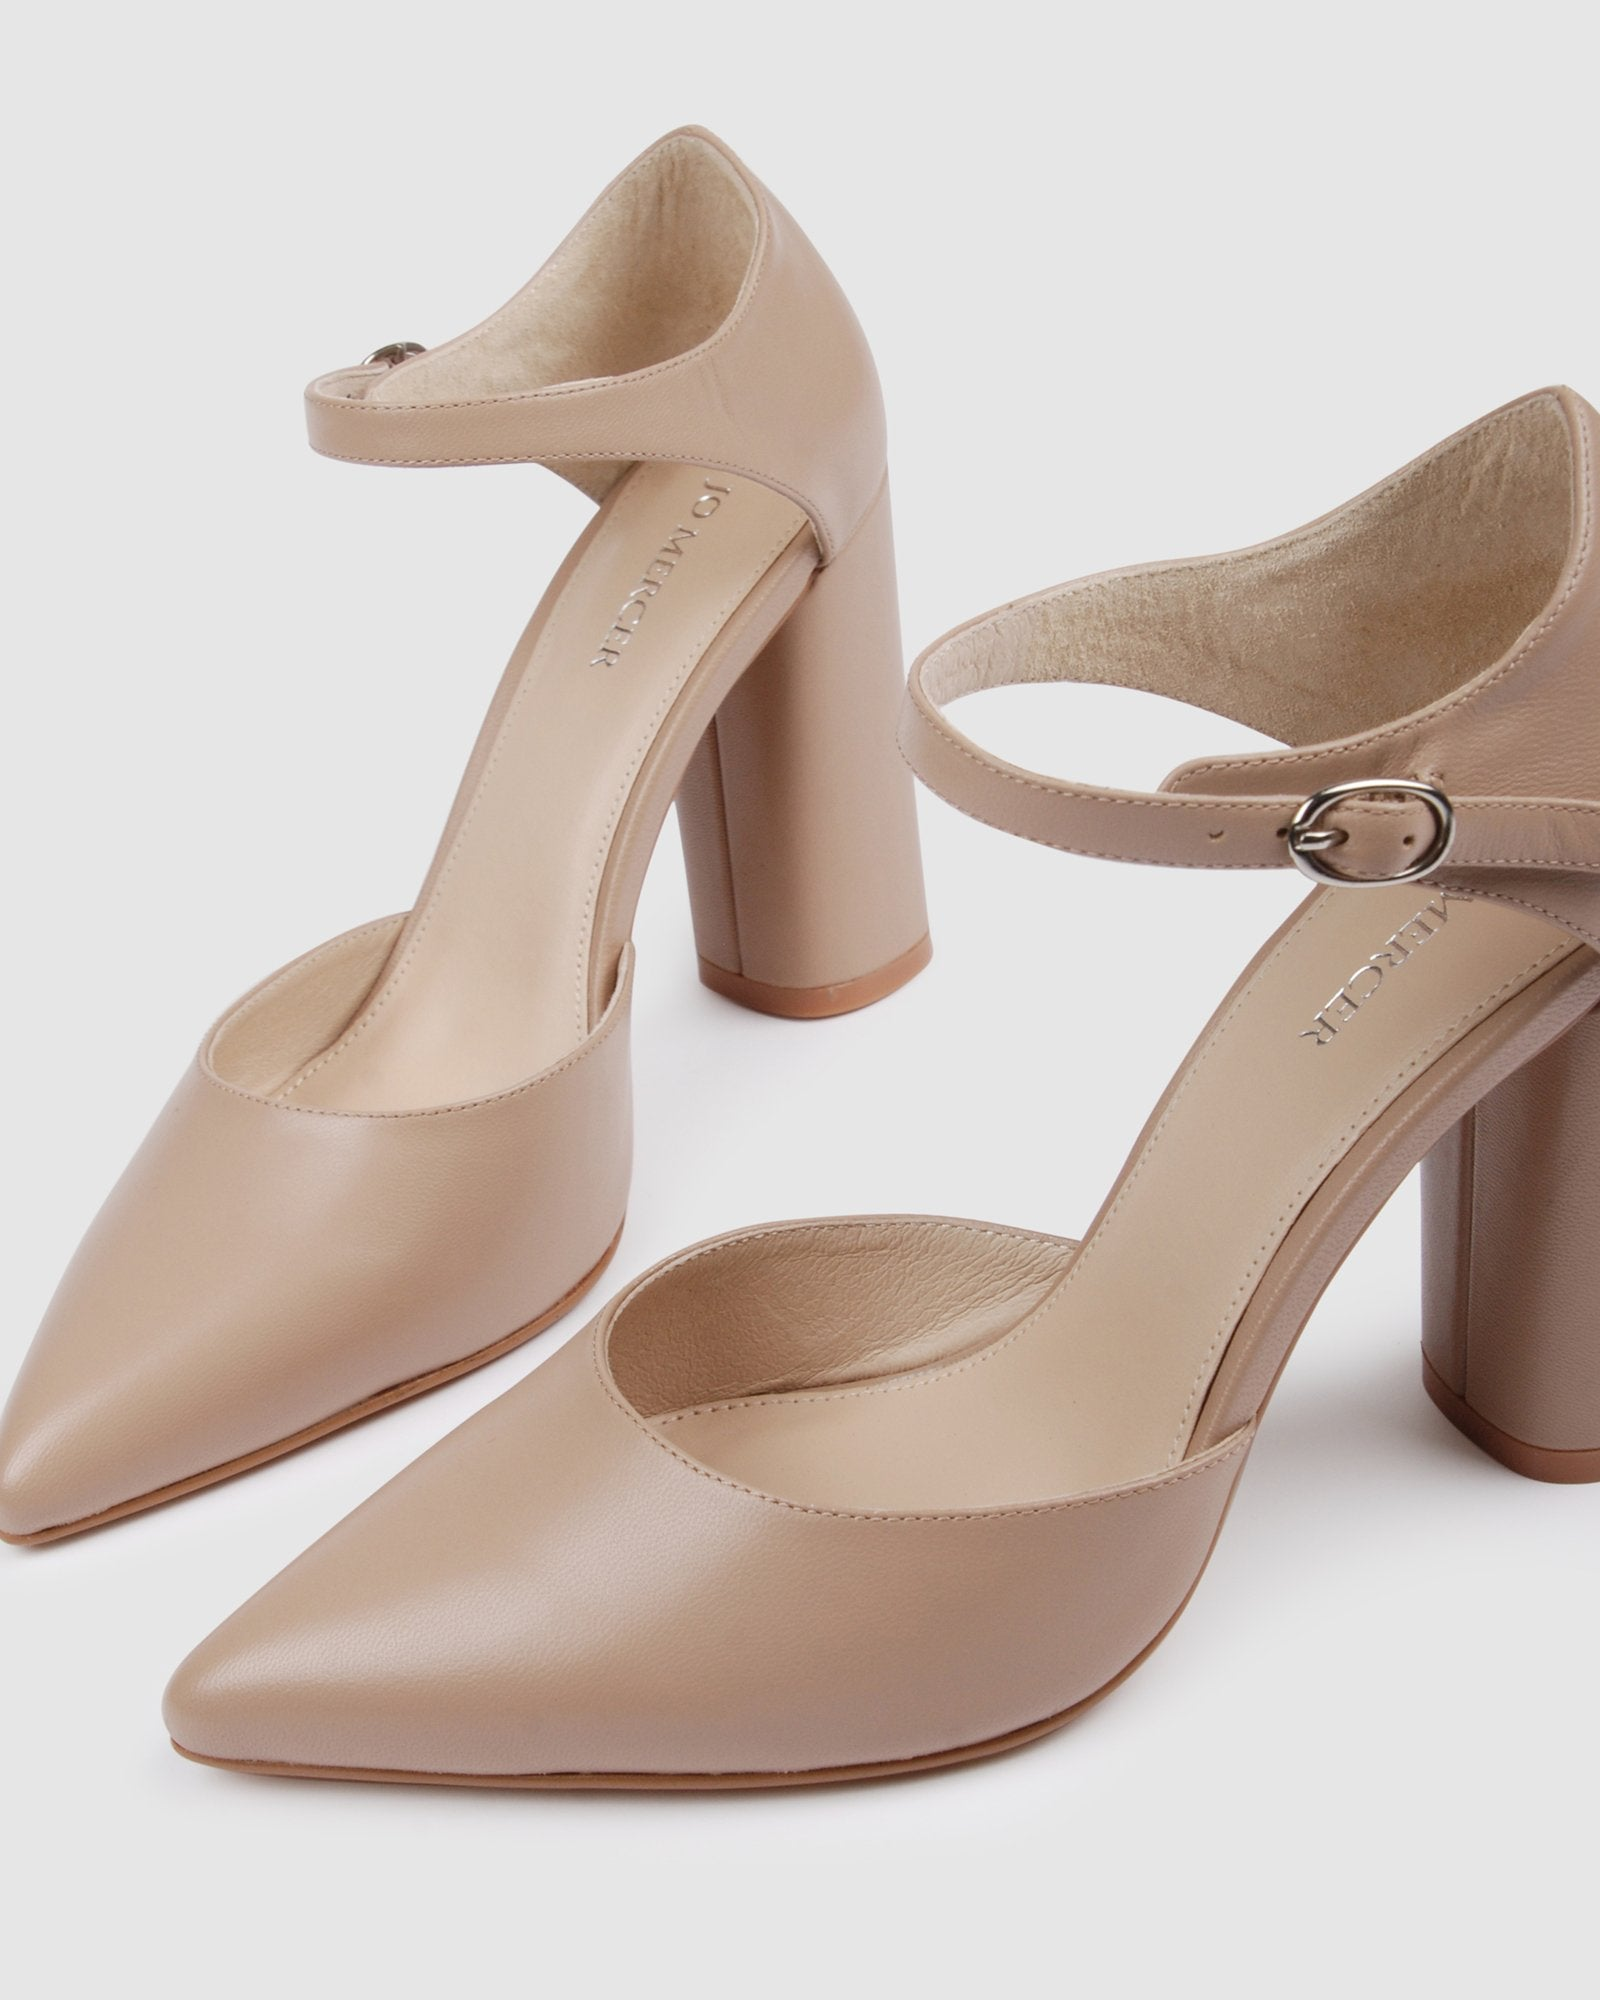 JUNIPER HIGH HEELS LIGHT BEIGE LEATHER